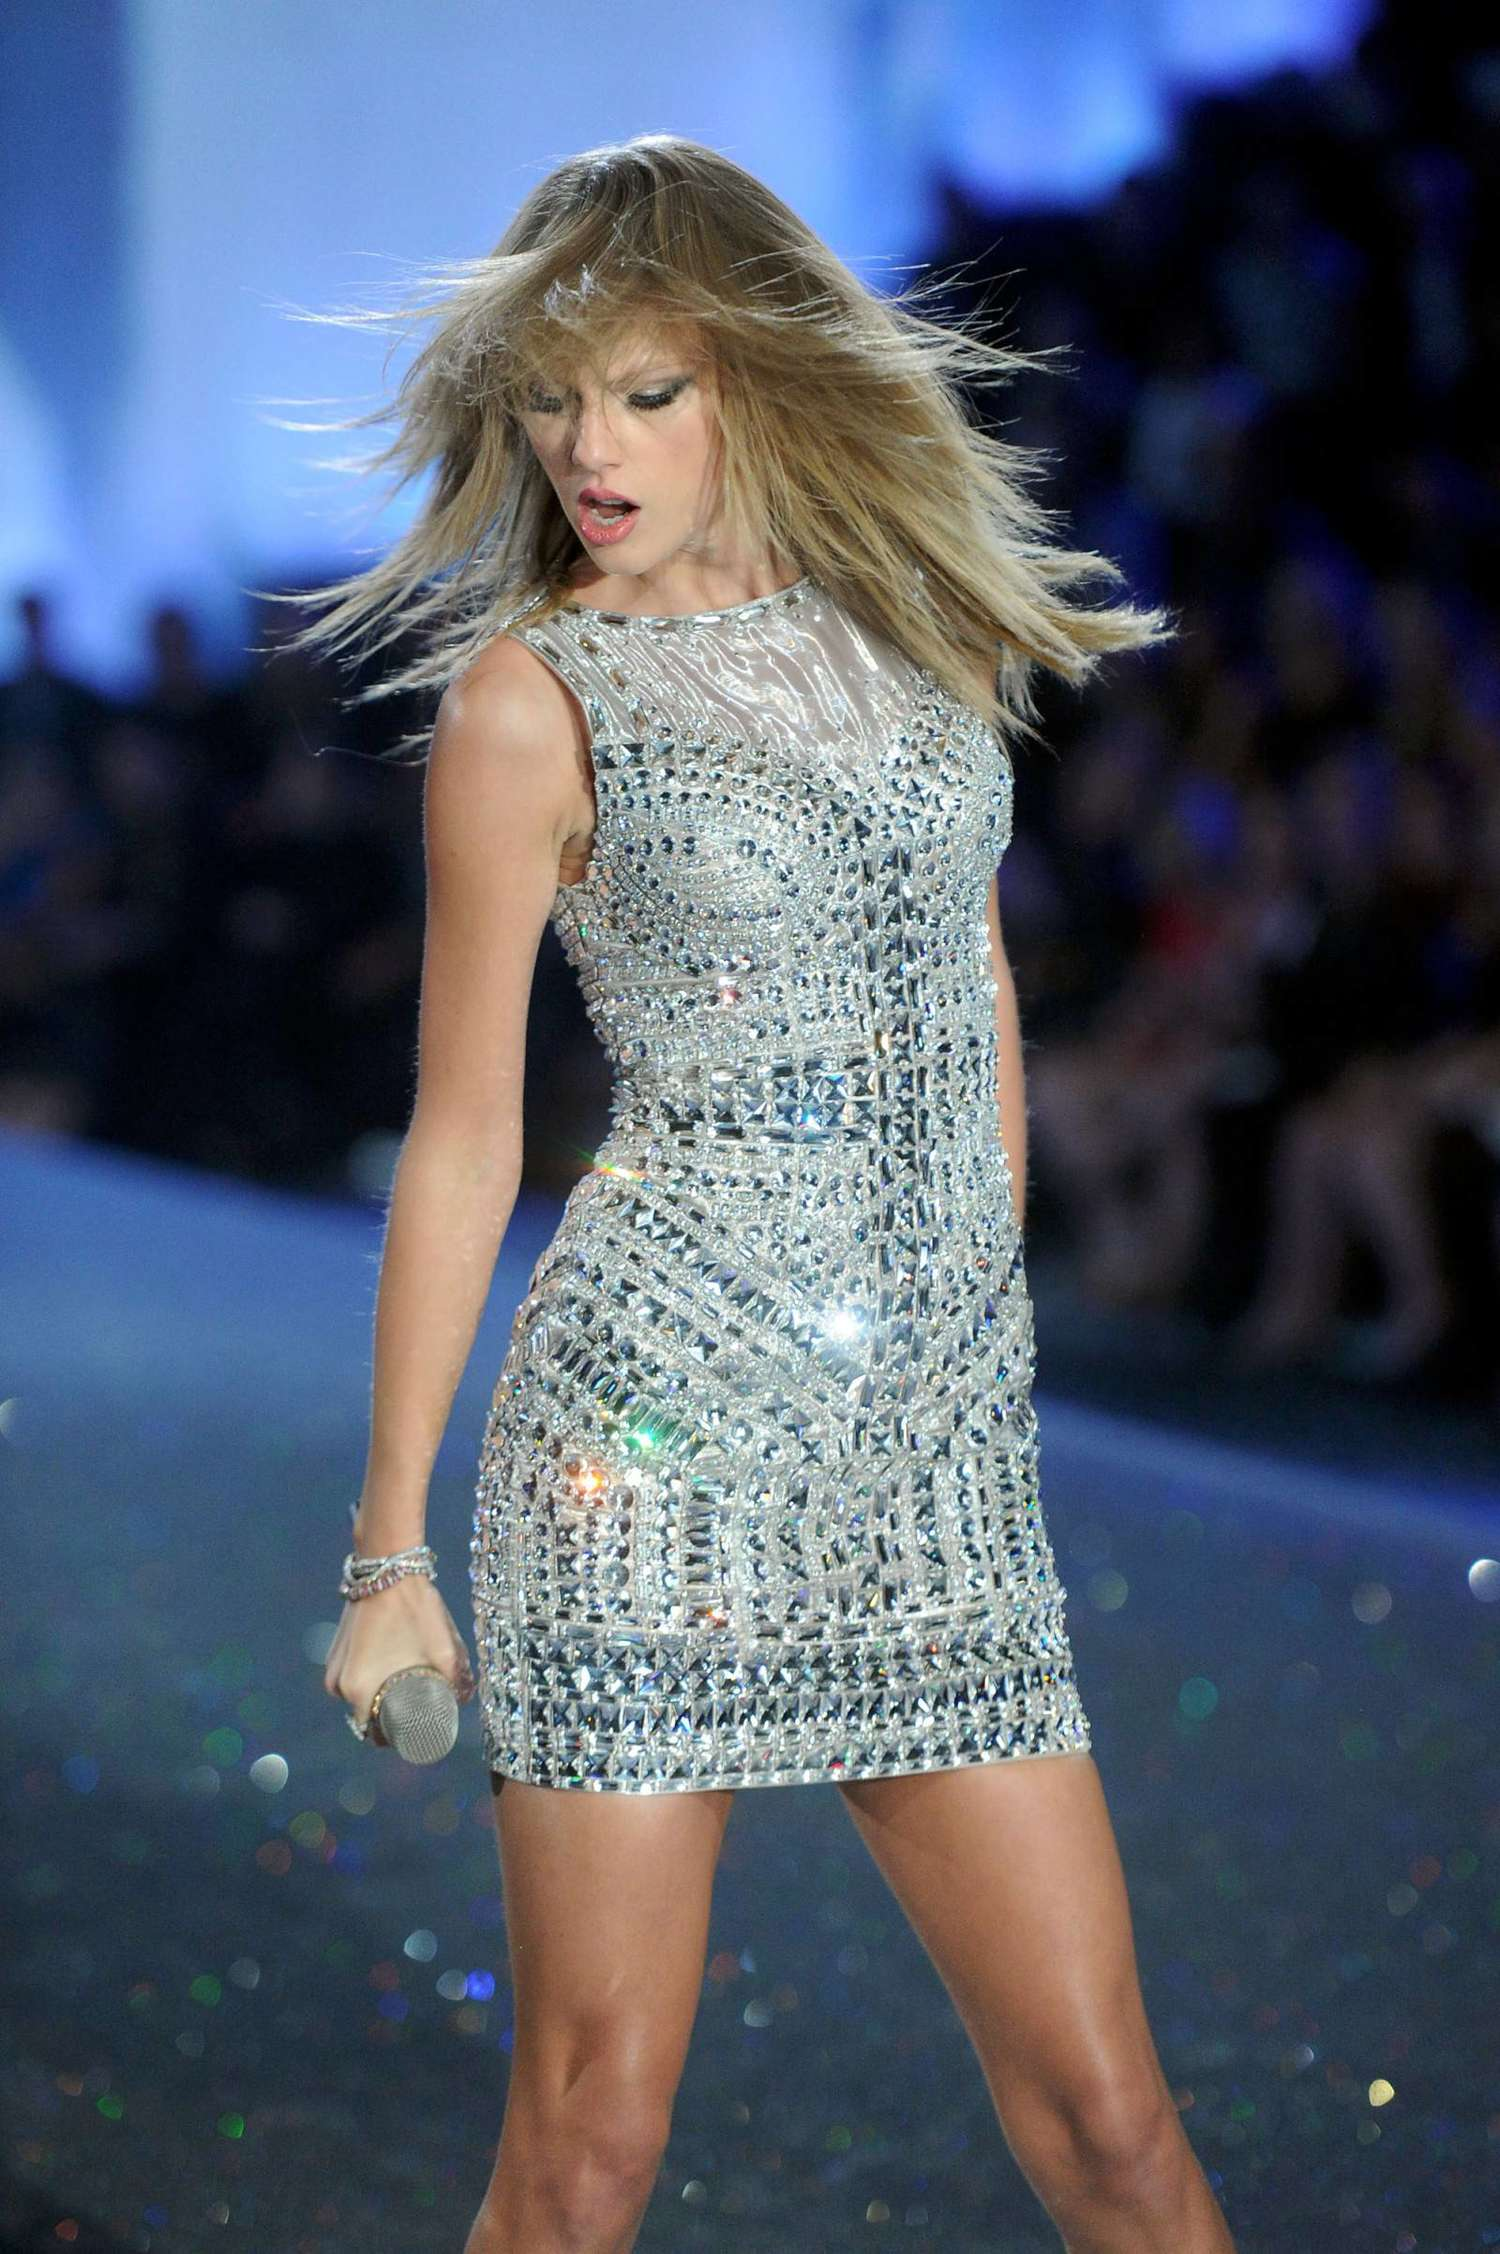 Taylor Swift 2013 Vs Fashion Show 38 Gotceleb